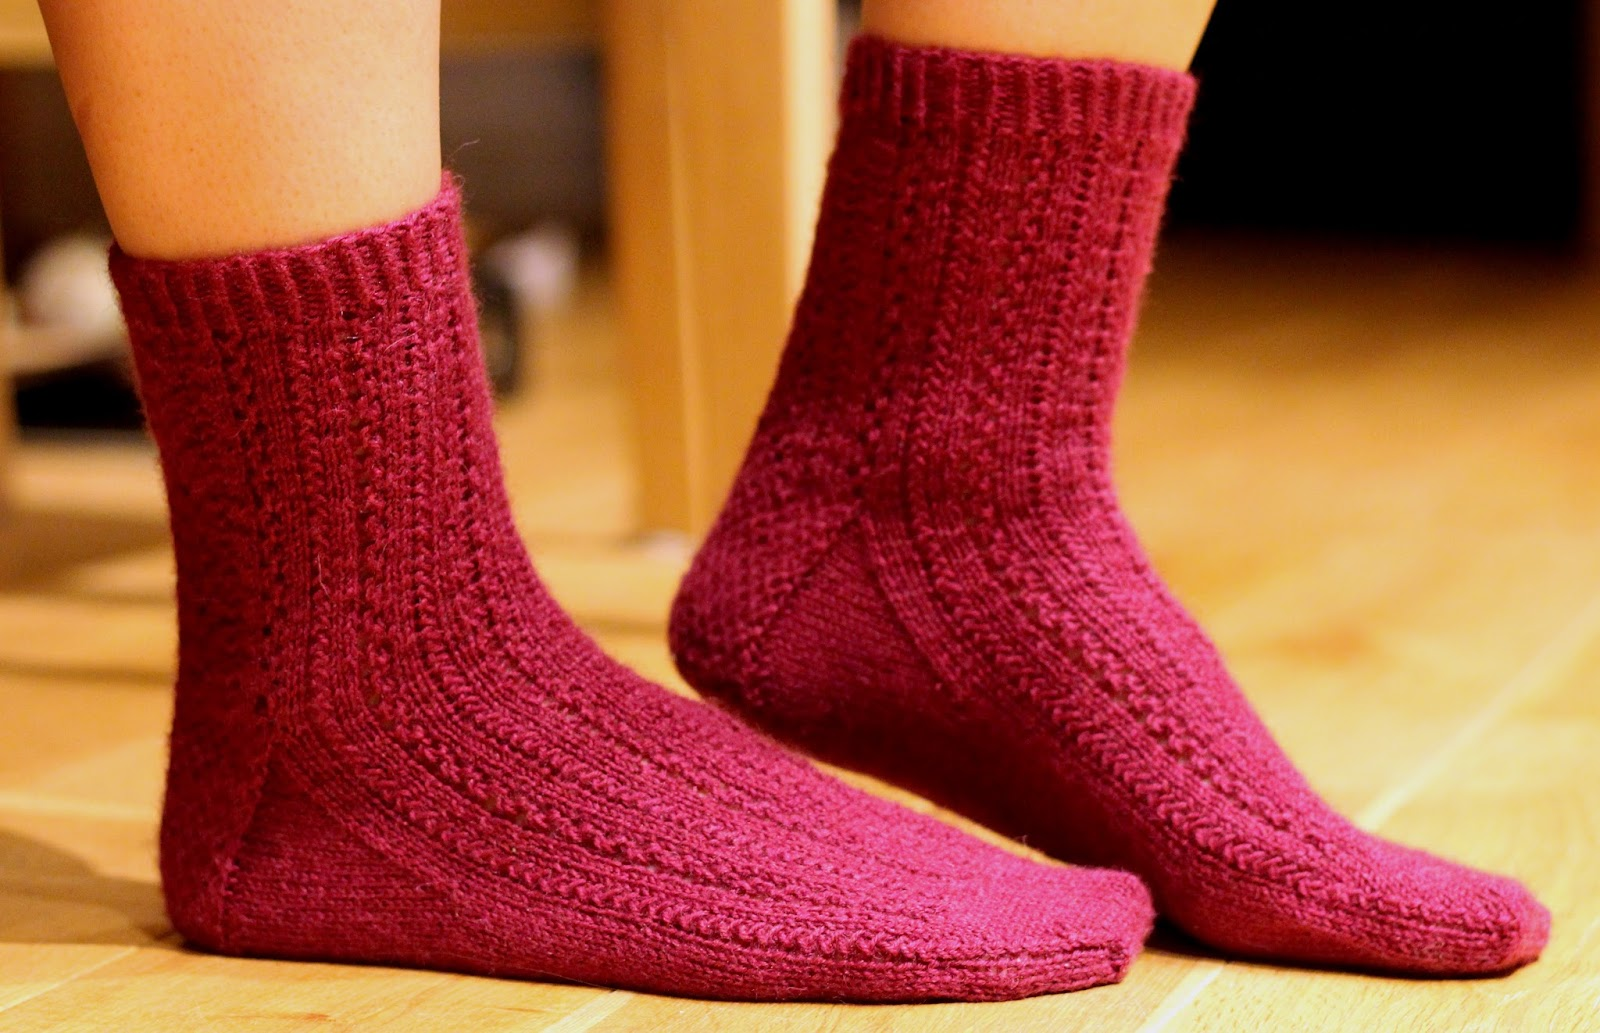 Finger Knitting Urban Dictionary : Pink sock urban dictionary imgkid the image